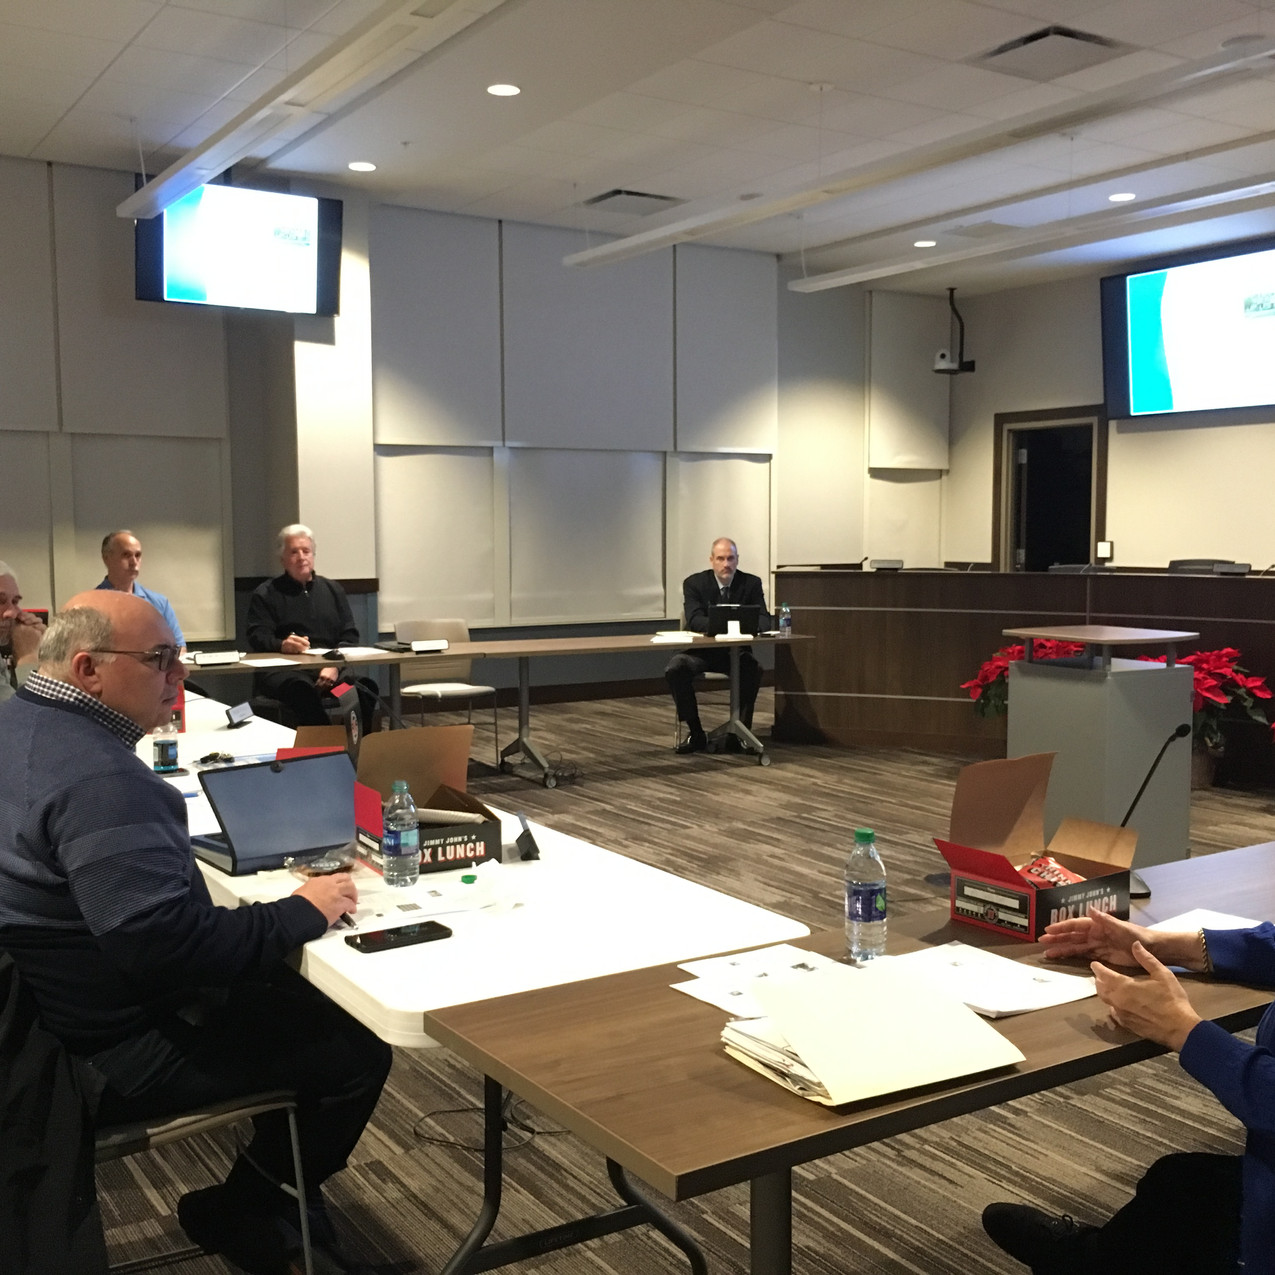 Carol Stream Plan Commissioner Training, 1-14-19 with Andy Cross, AICP and Laurie Marston, FAICP (photos by Paula Freeze)